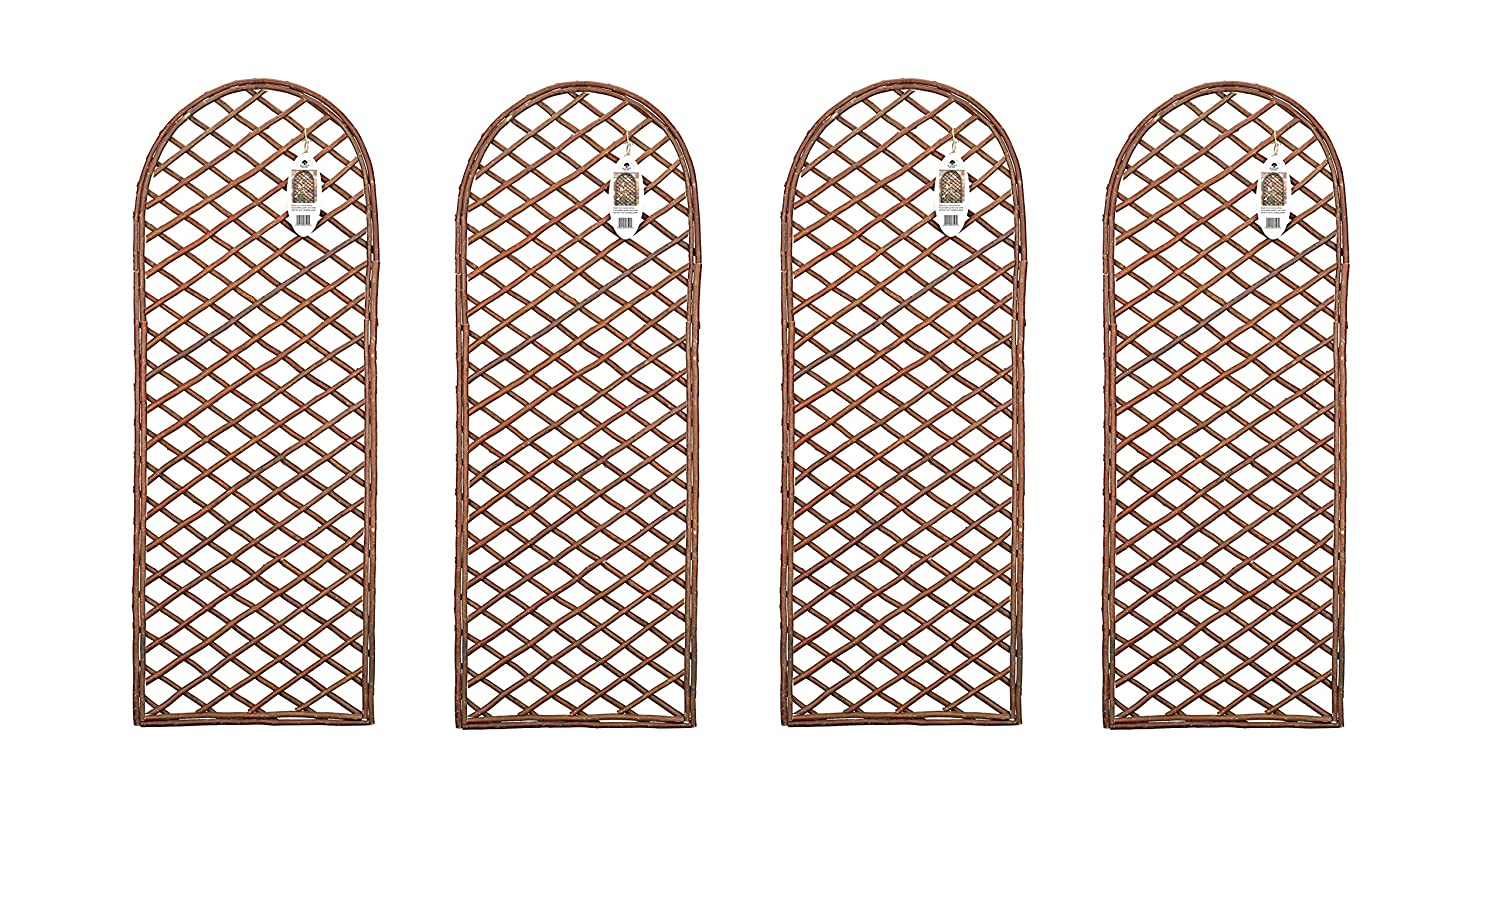 Ruddings Wood Pack of 4 x Willow Trellis Panel Round Top - Curved Garden Wall Framed Trellis Supports